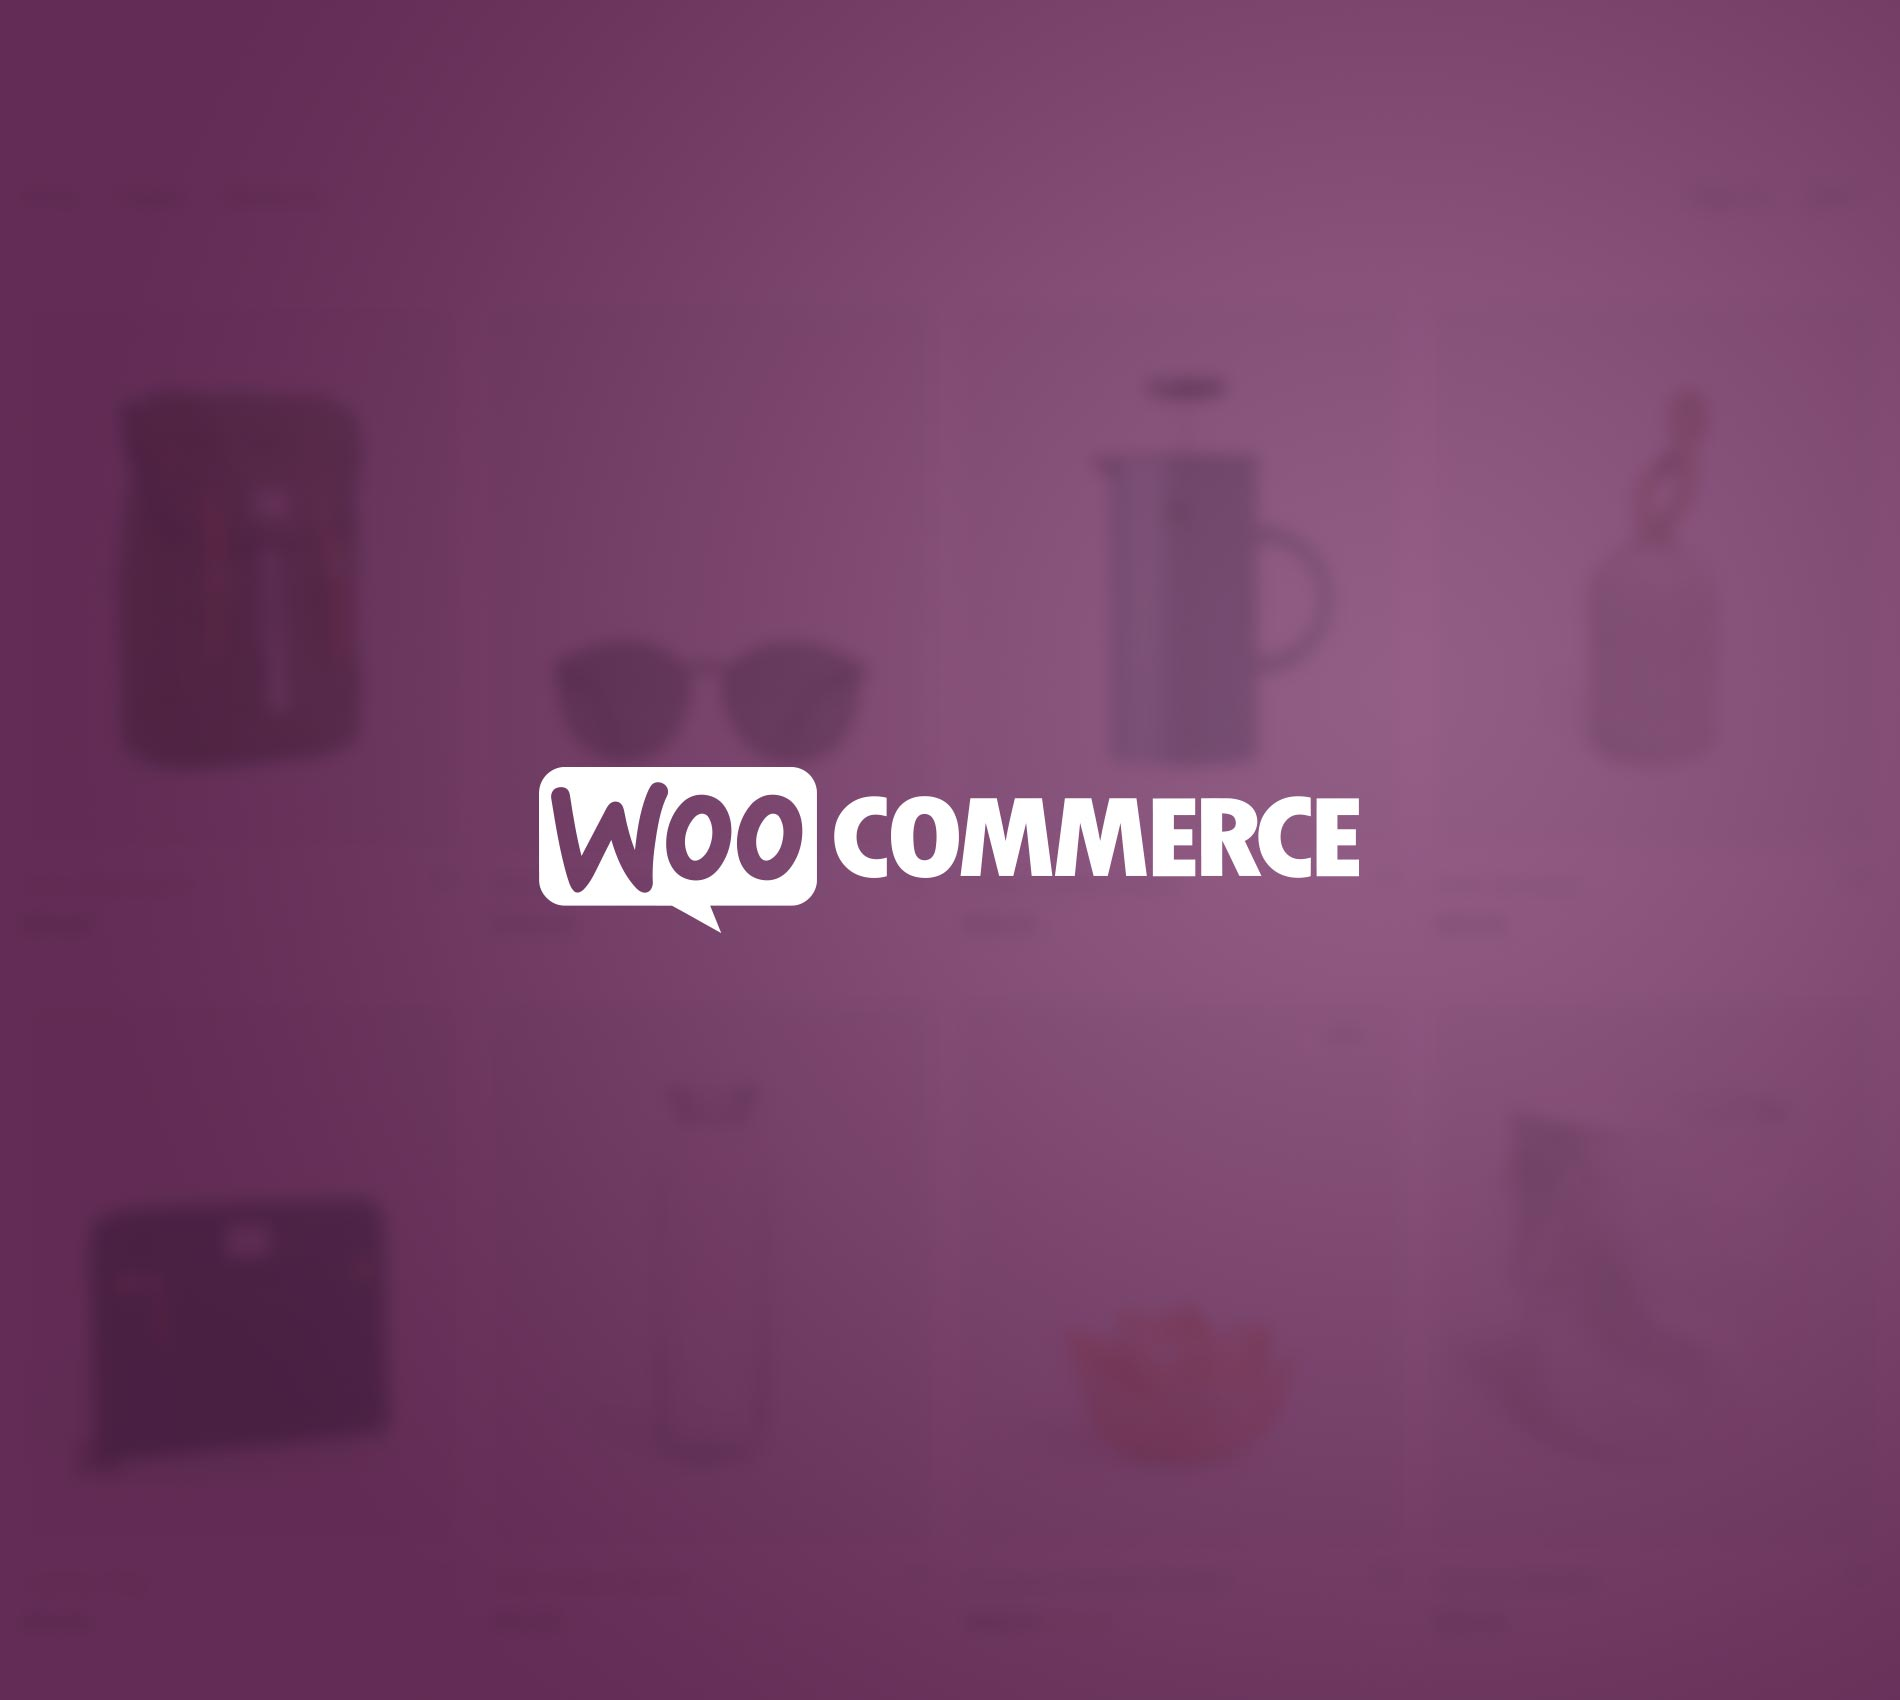 PagBrasil launches its WooCommerce extension